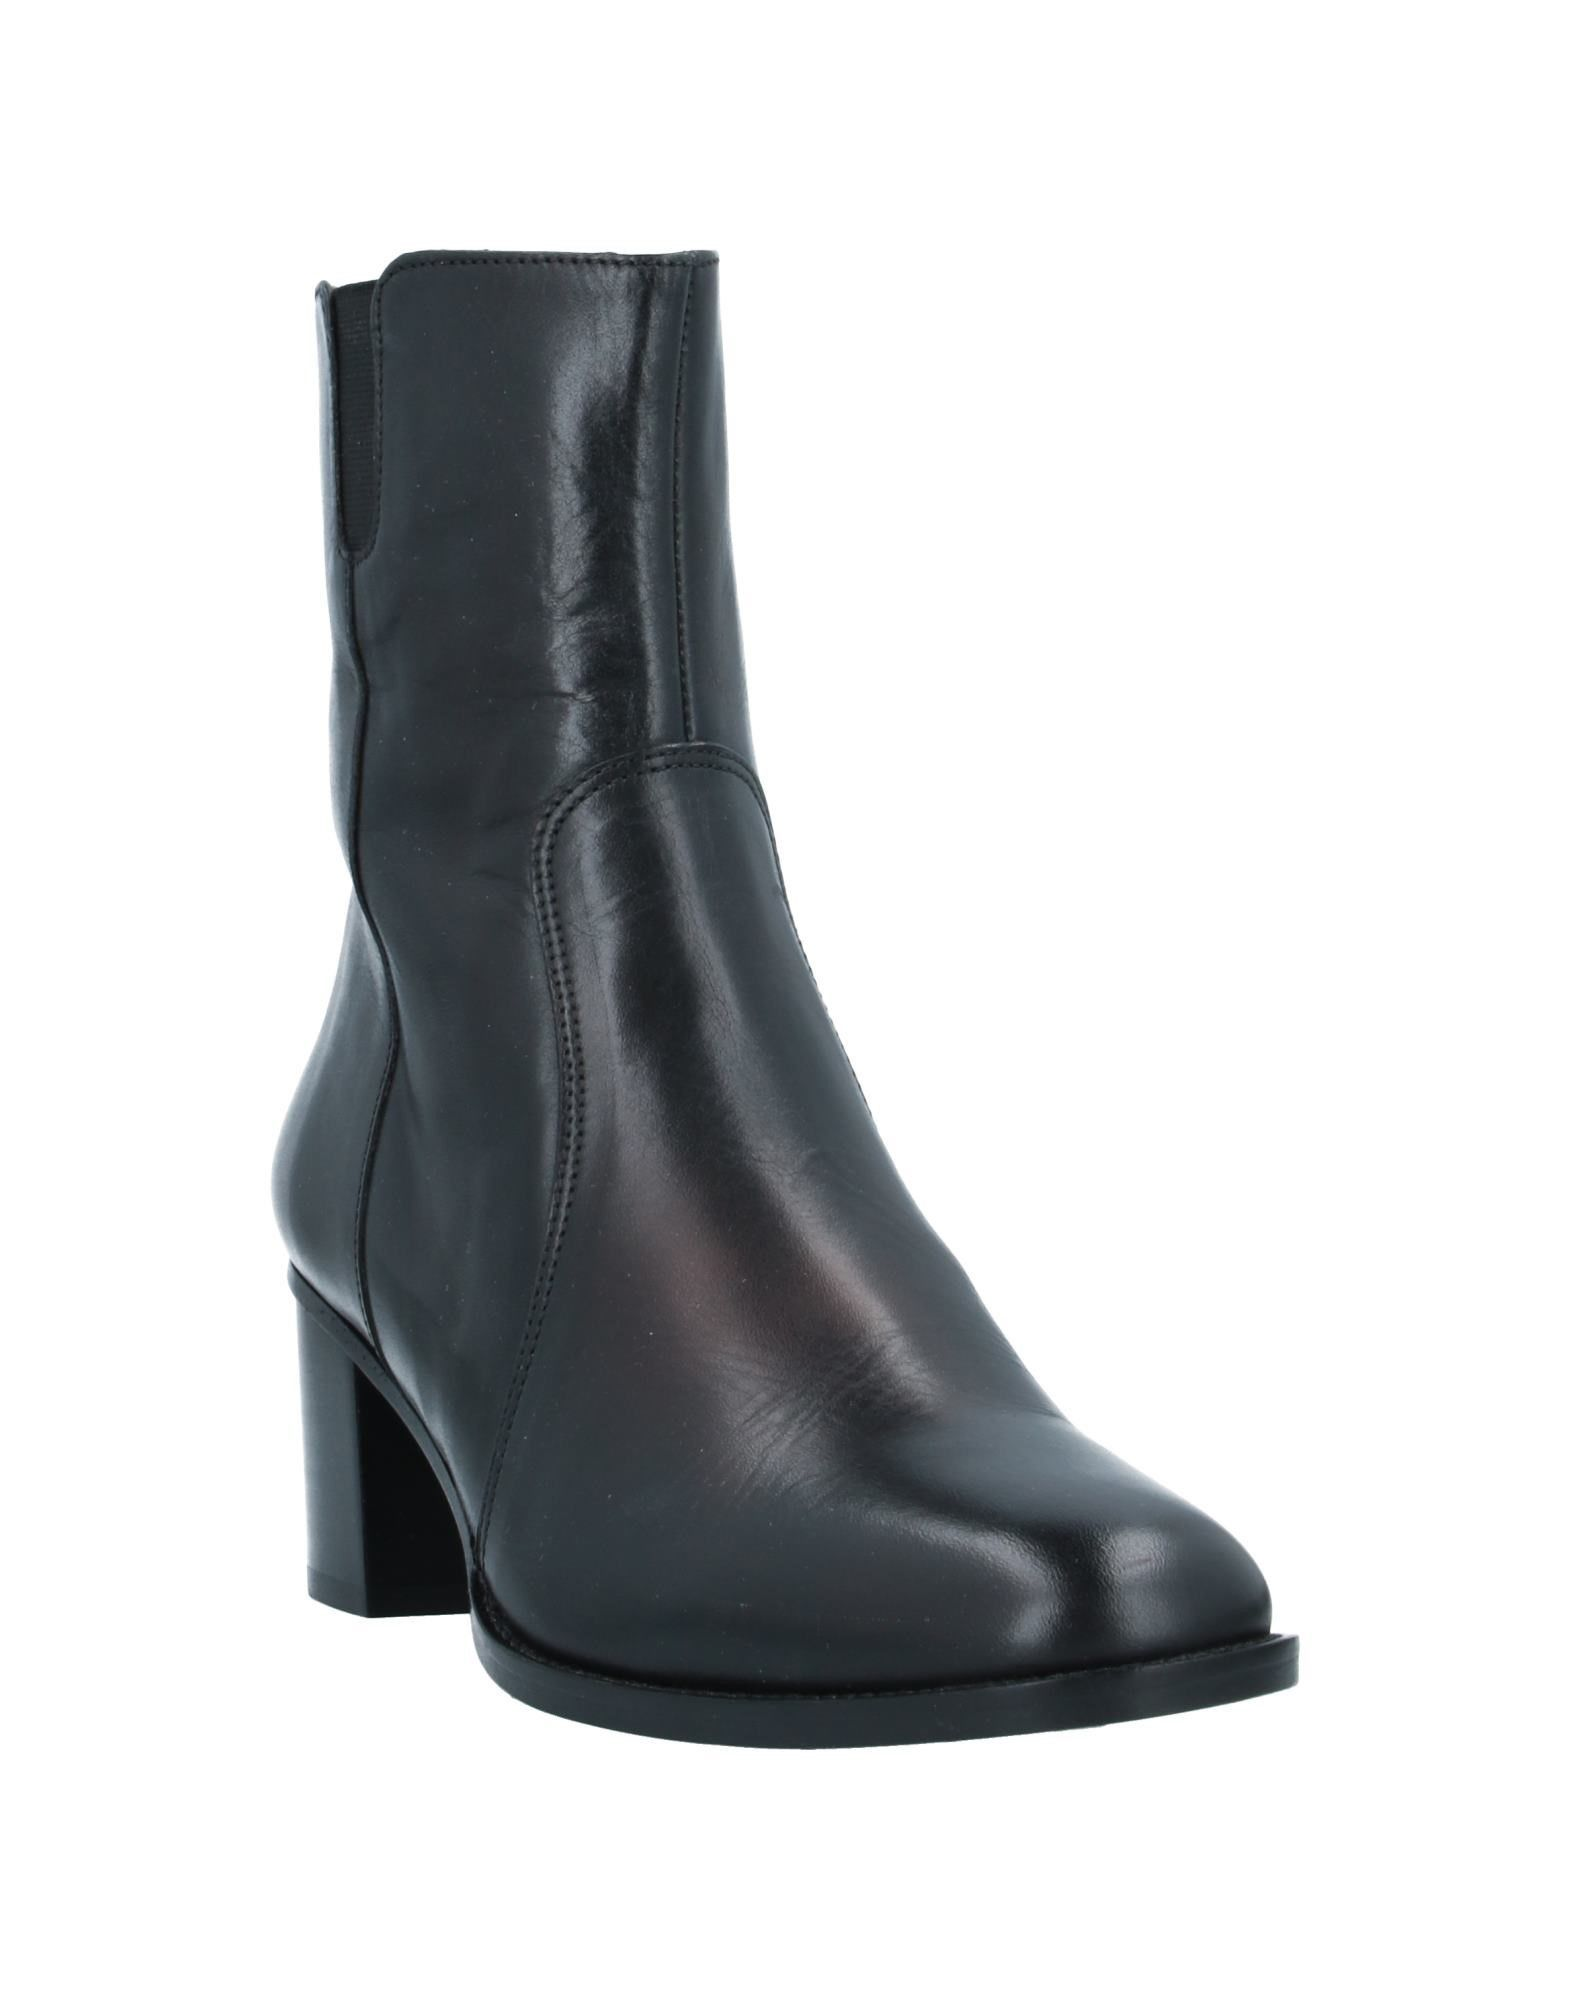 Sessun Black Leather Ankle Boots